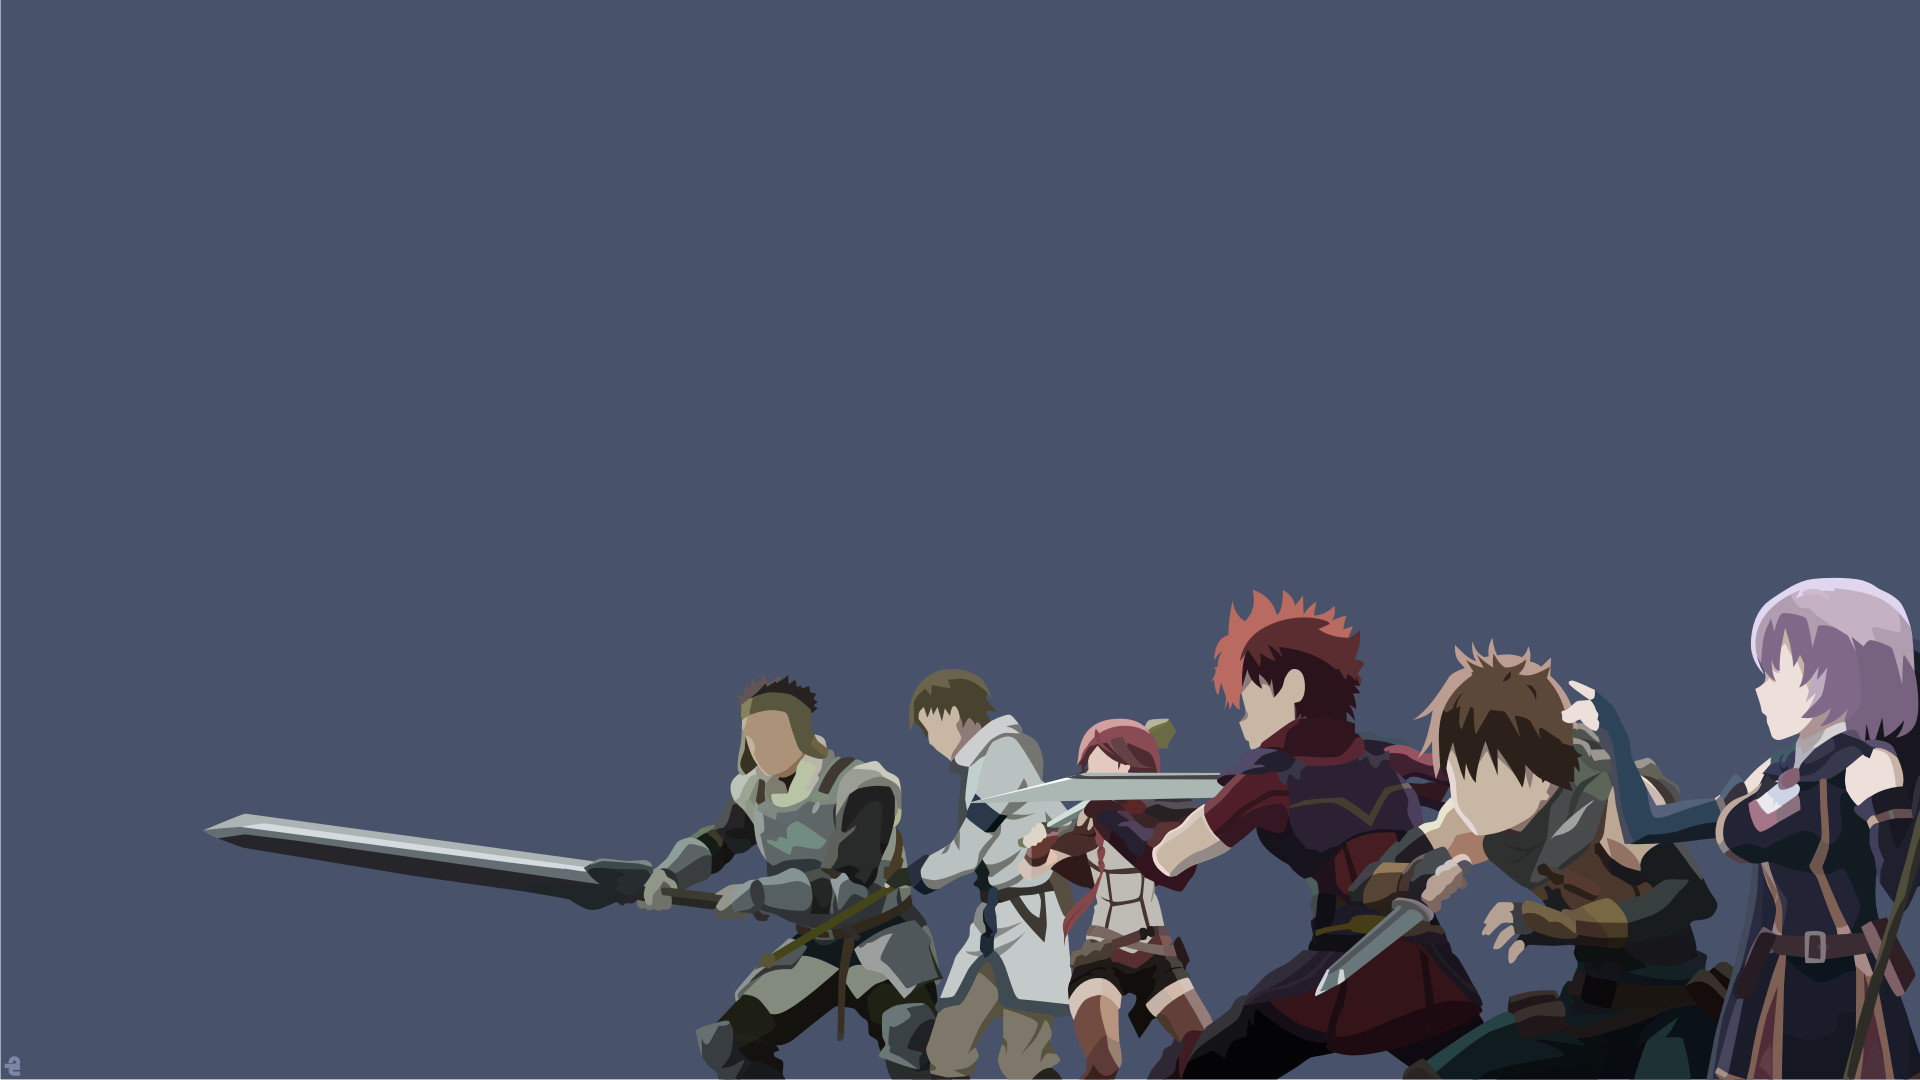 Best Grimgar Of Fantasy And Ash wallpaper ID:39952 for High Resolution full hd 1080p computer